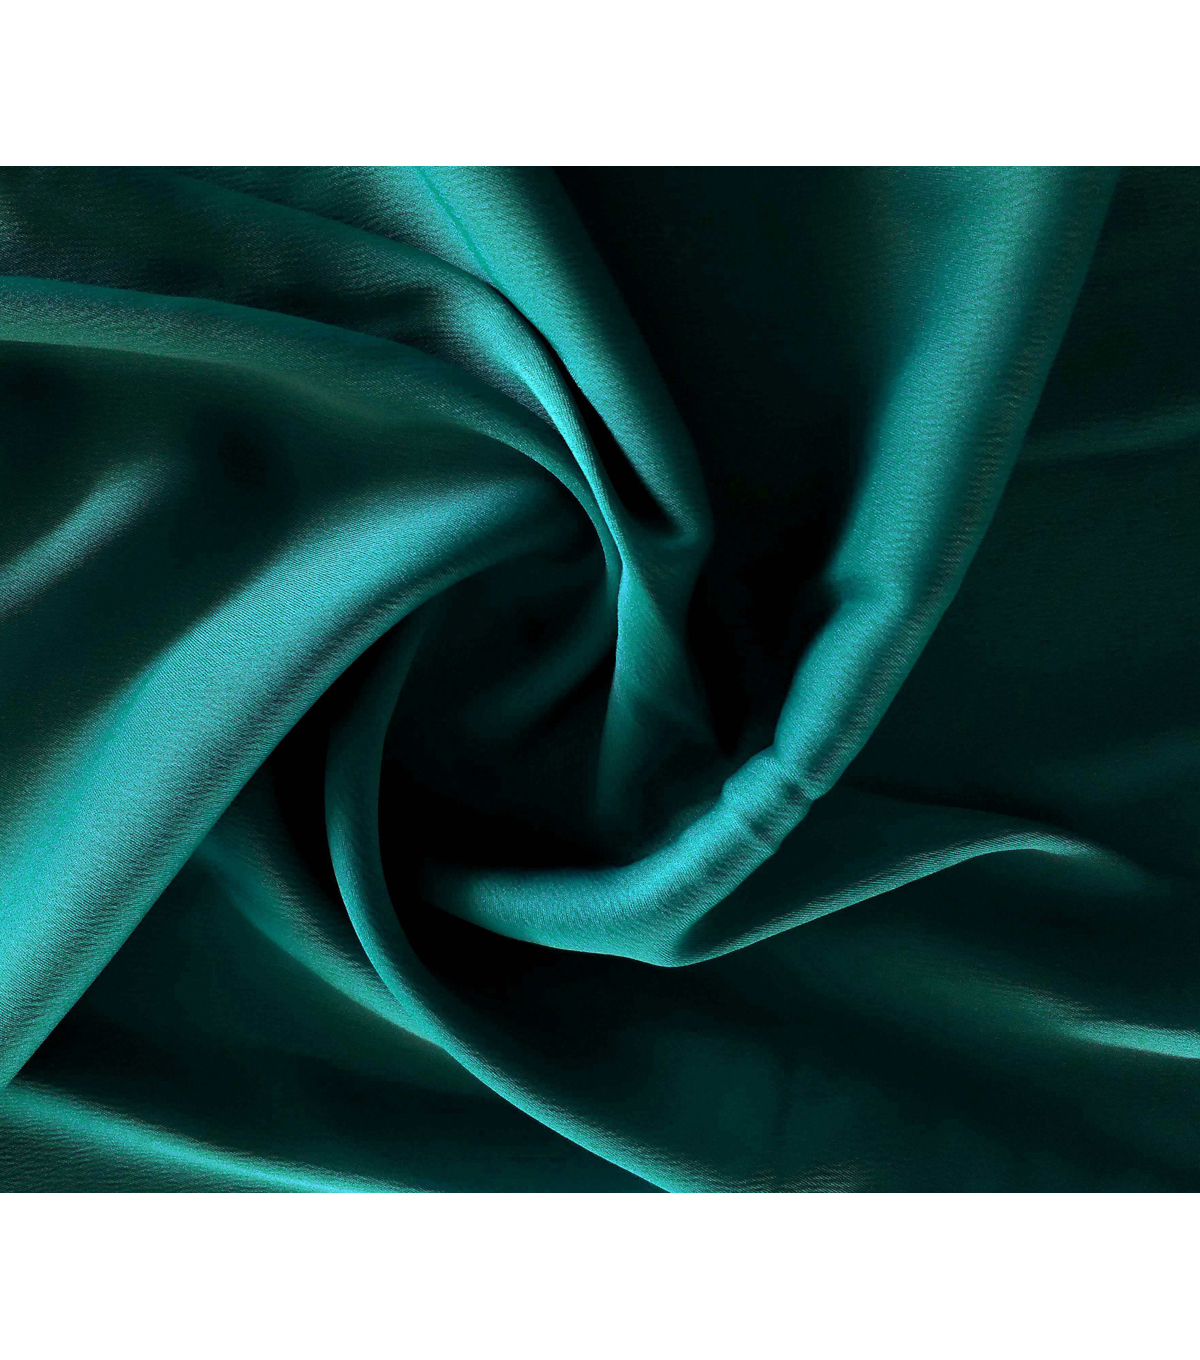 Silky Stretch Satin Fabric-Textured Solids, Dark Teal